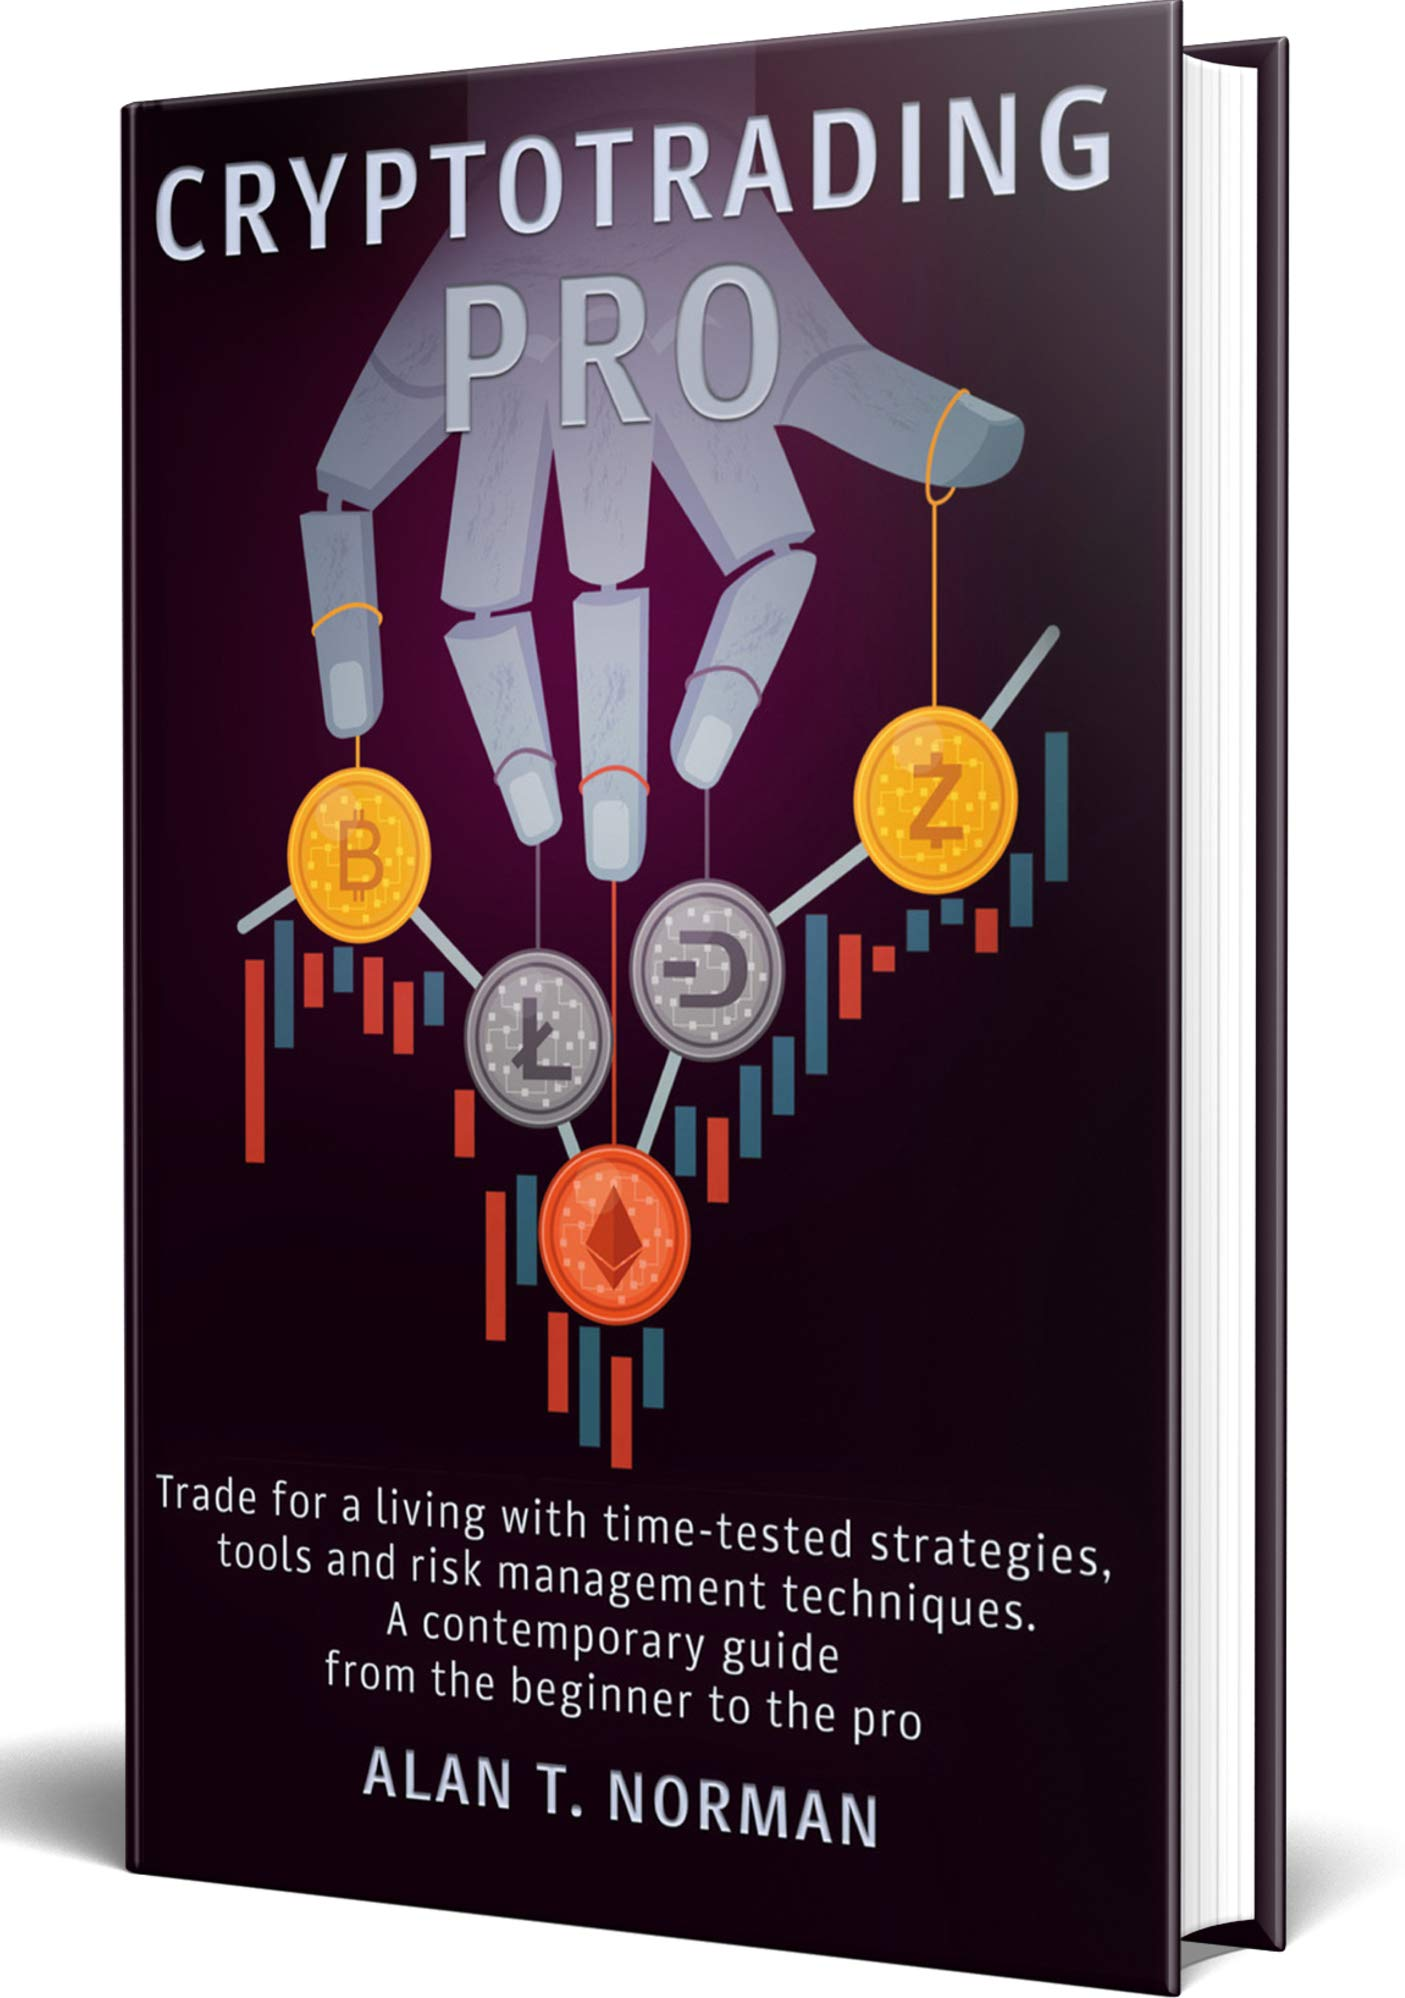 CRYPTOTRADING PRO  Trade For A Living With Time Tested Strategies Tools And Risk Management Techniques Contemporary Guide From The Beginner To The Pro  English Edition